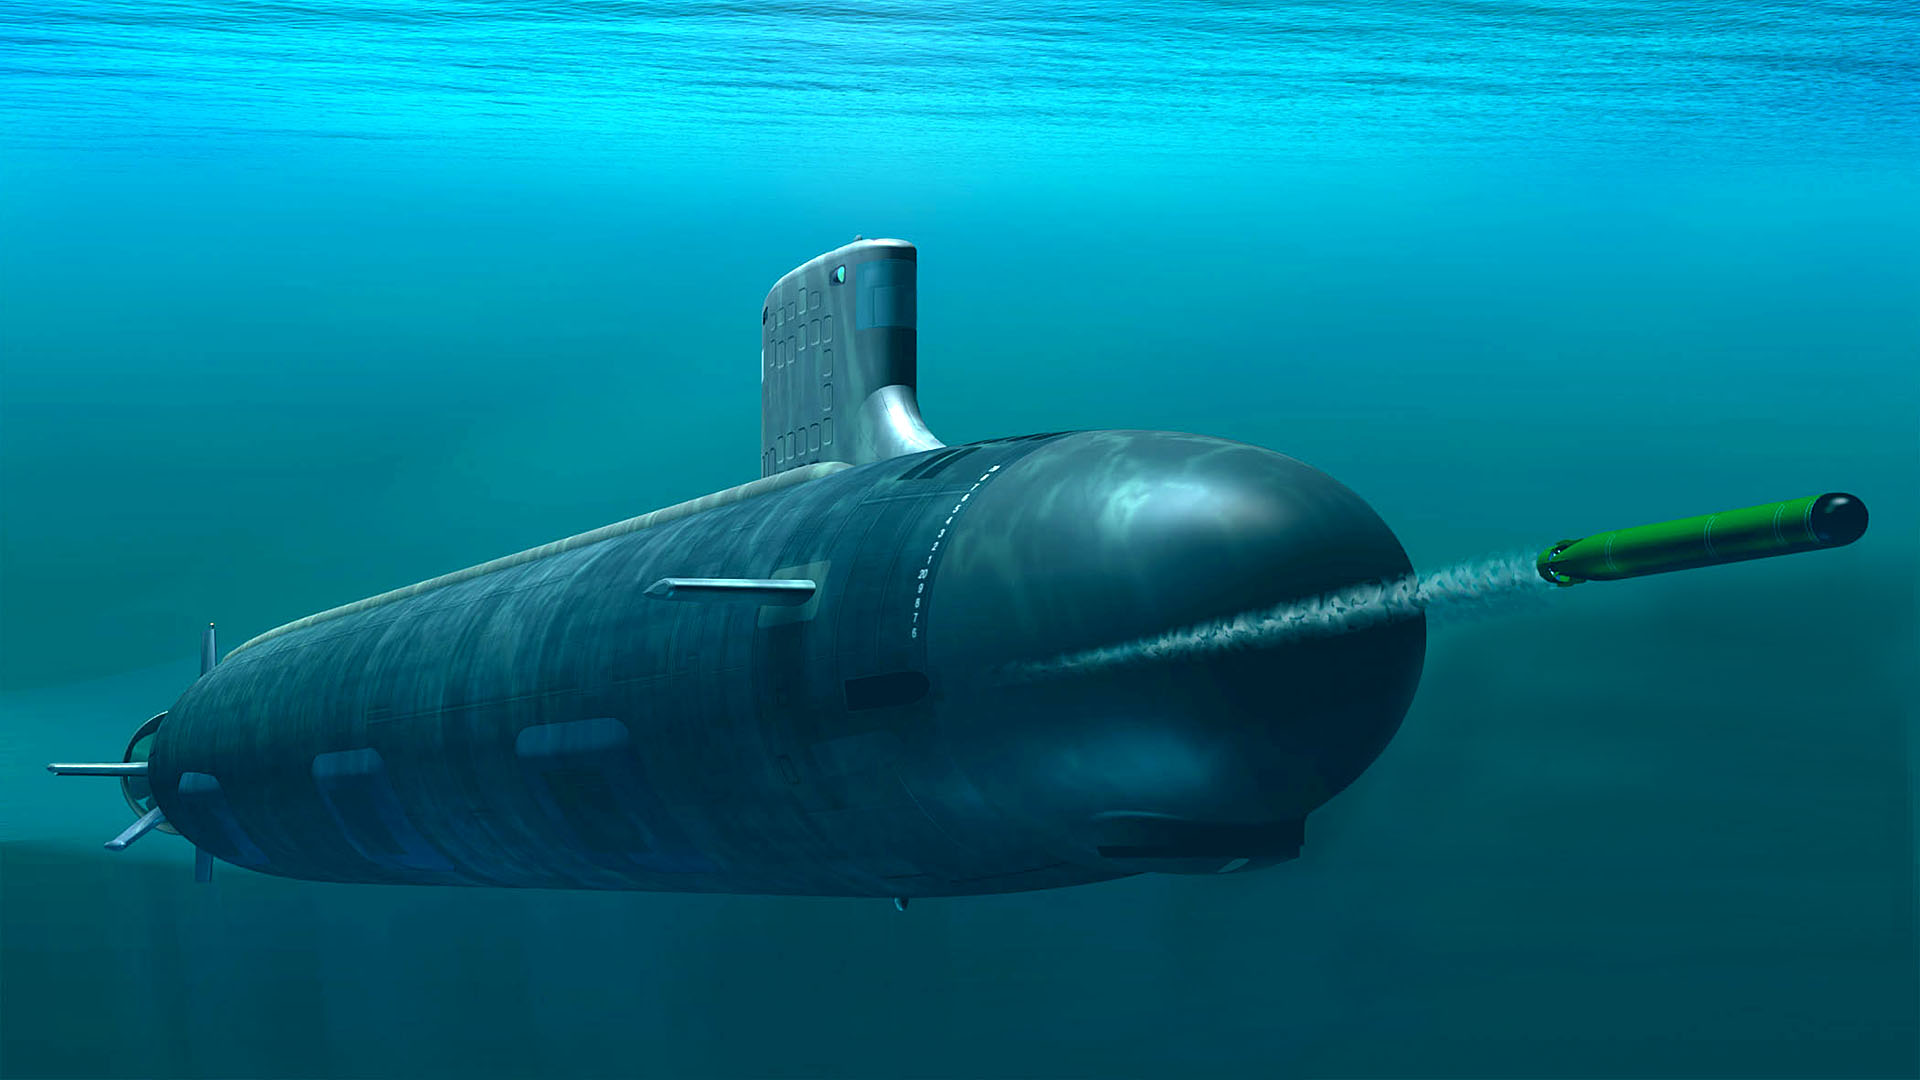 Submarine Computer Wallpapers, Desktop Backgrounds ...